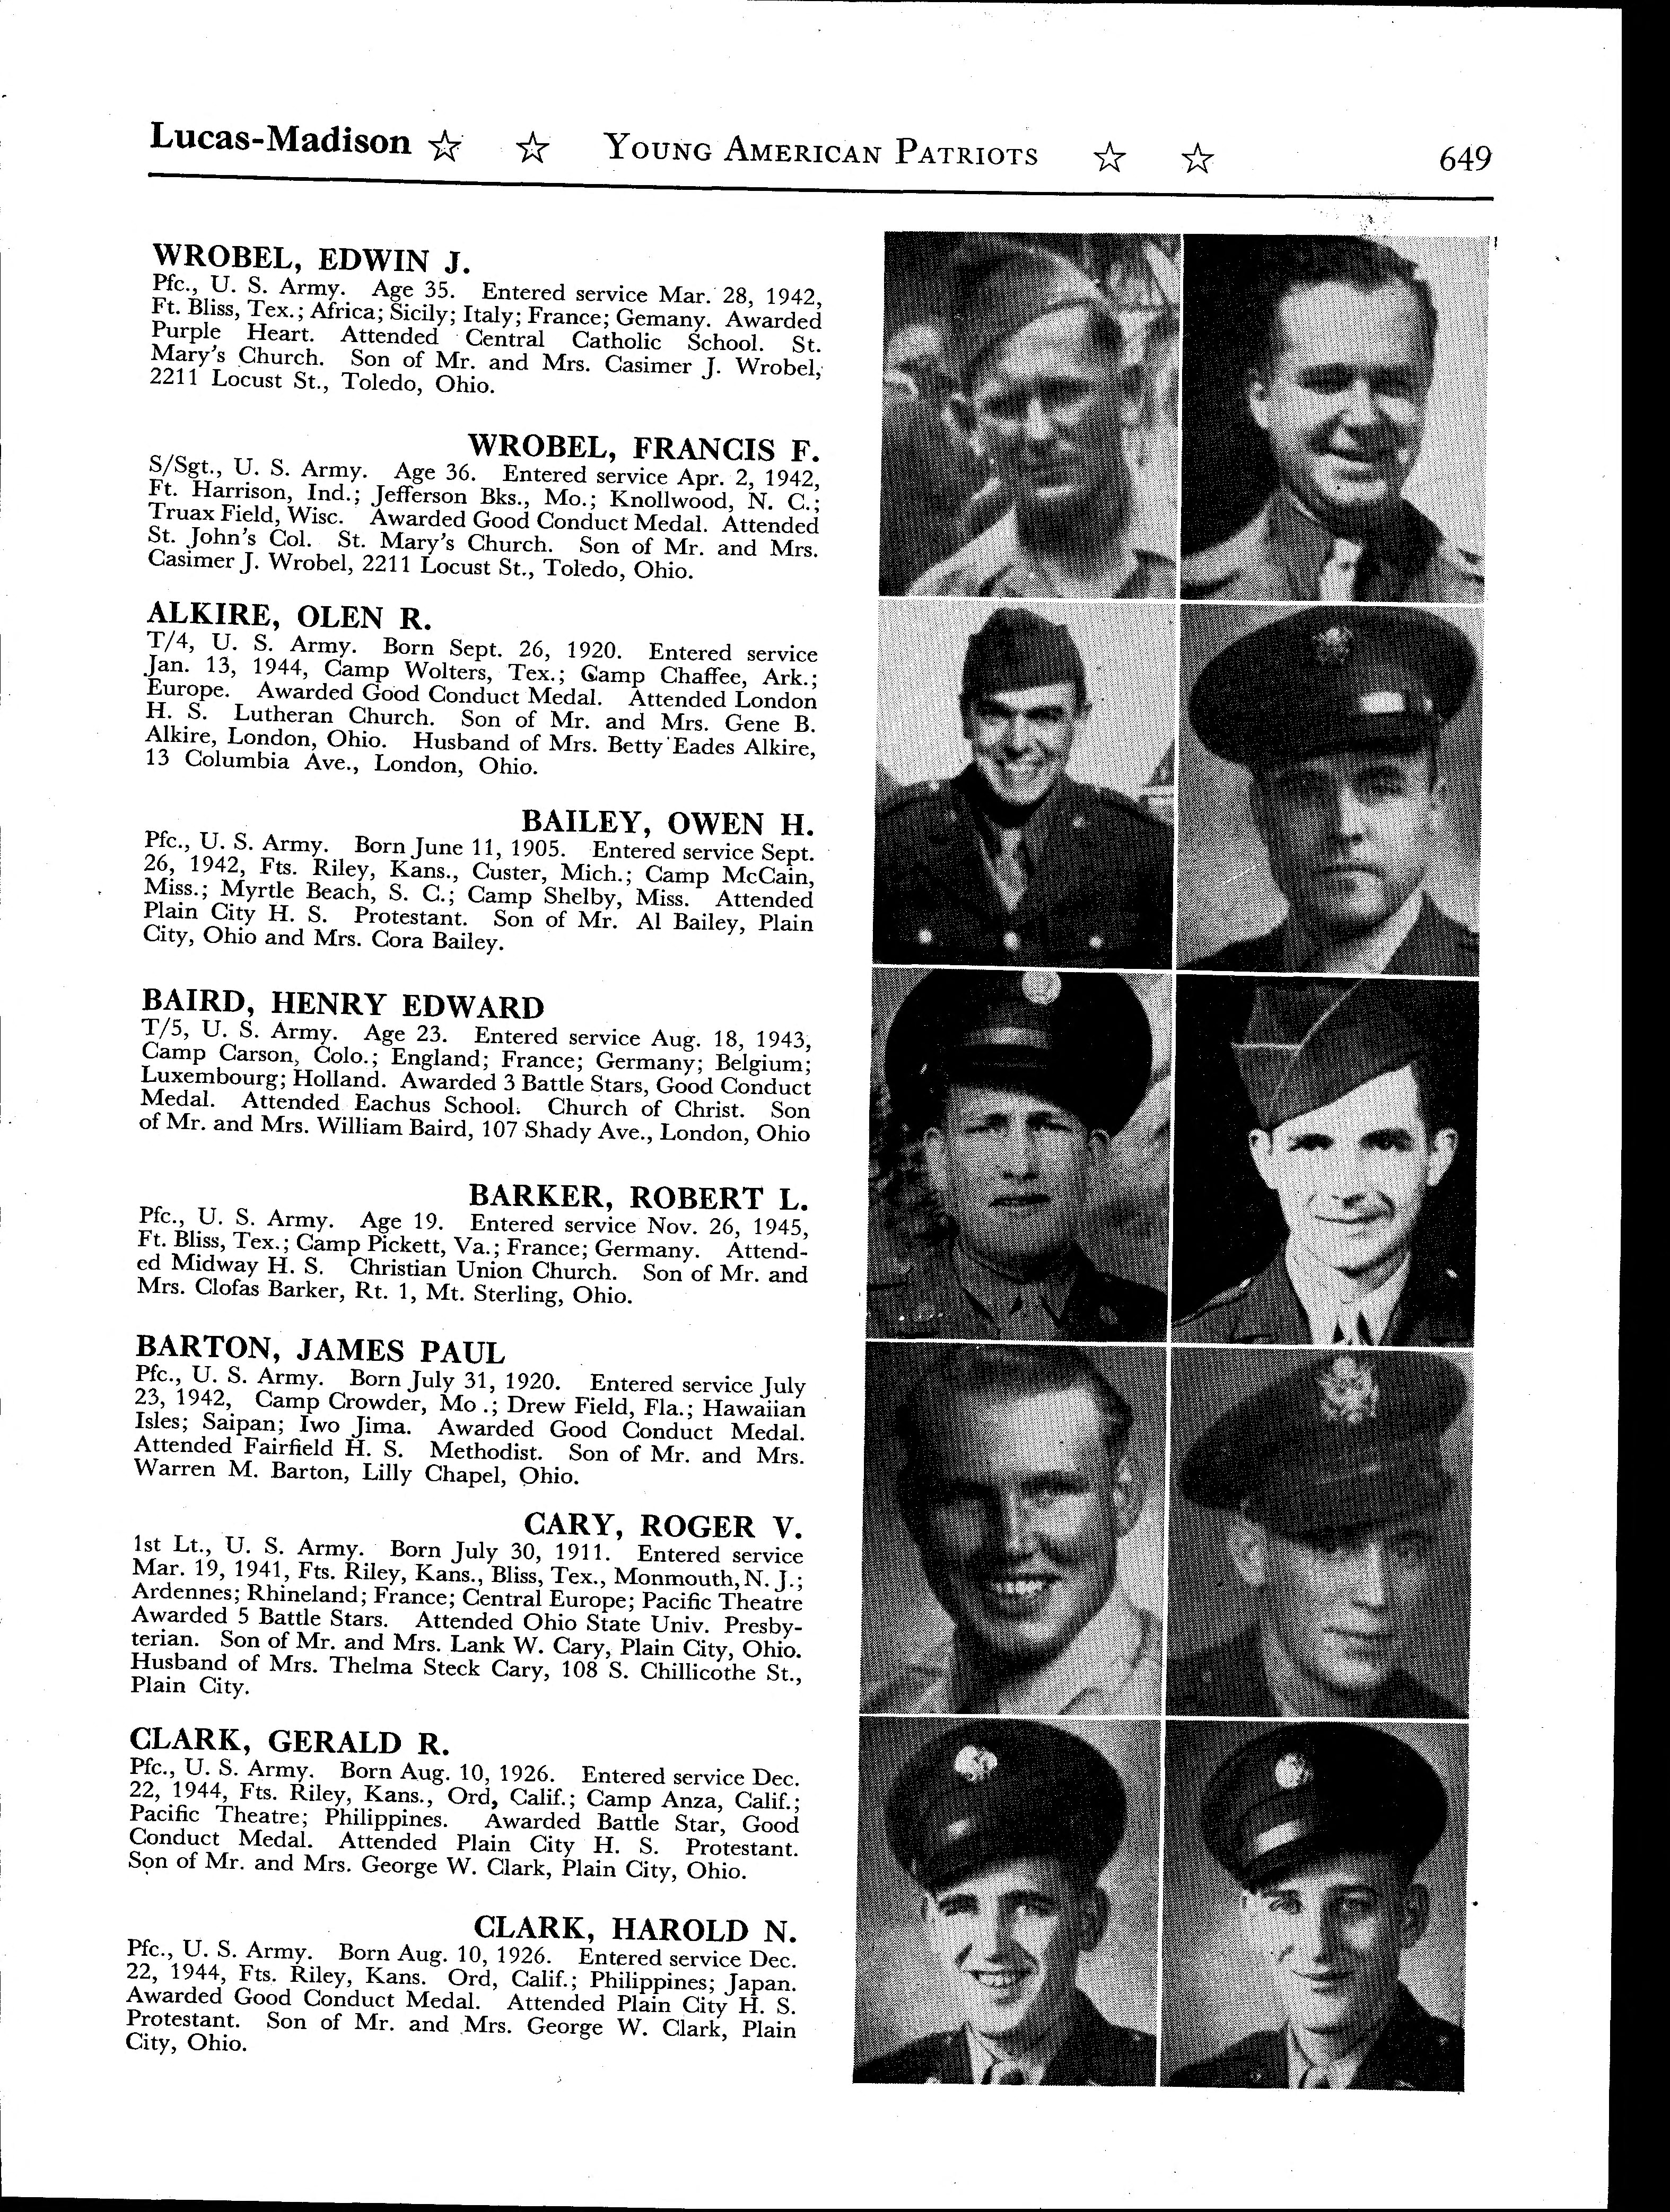 World war ii young american patriots 1941 1945 page 649